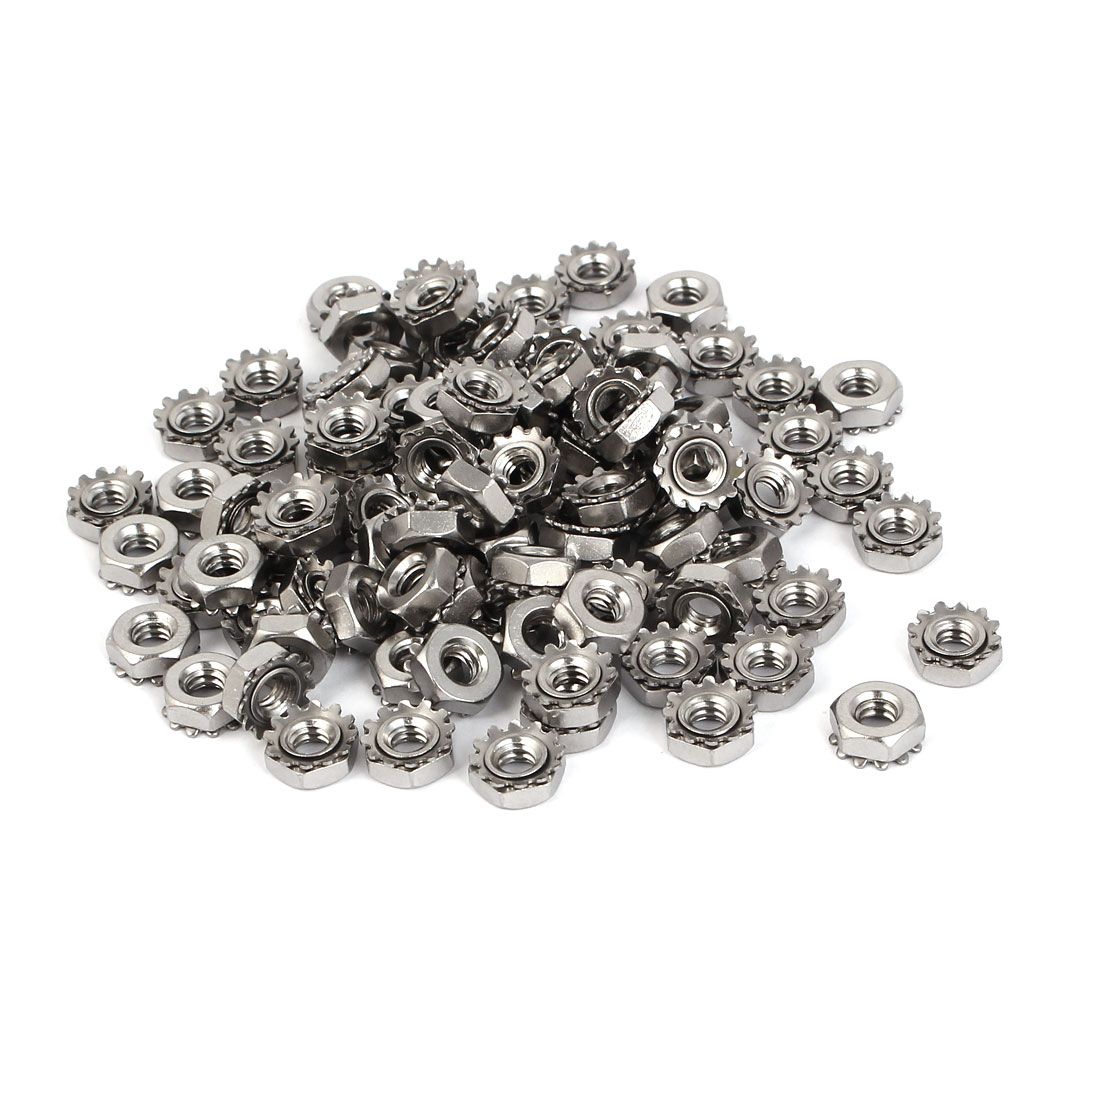 10#-24 304 Stainless Steel Female Thread Kep Hex Head Lock Nut 100pcs